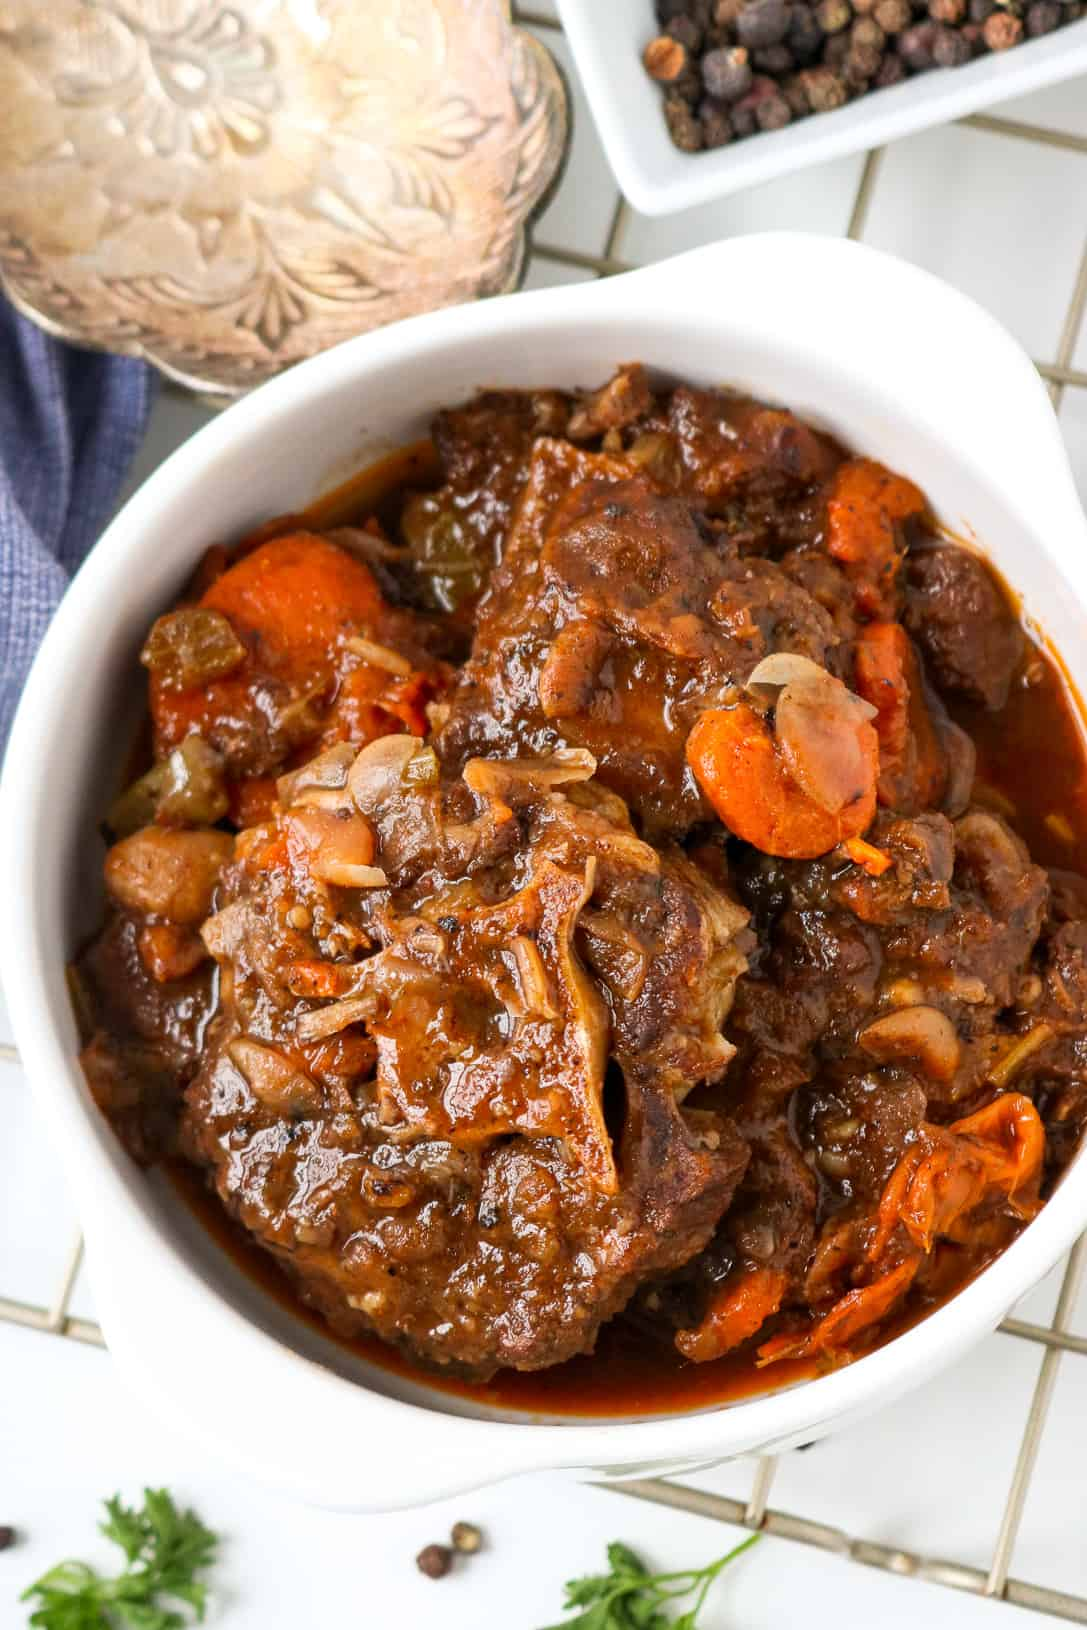 Oxtail in white bowl with carrots